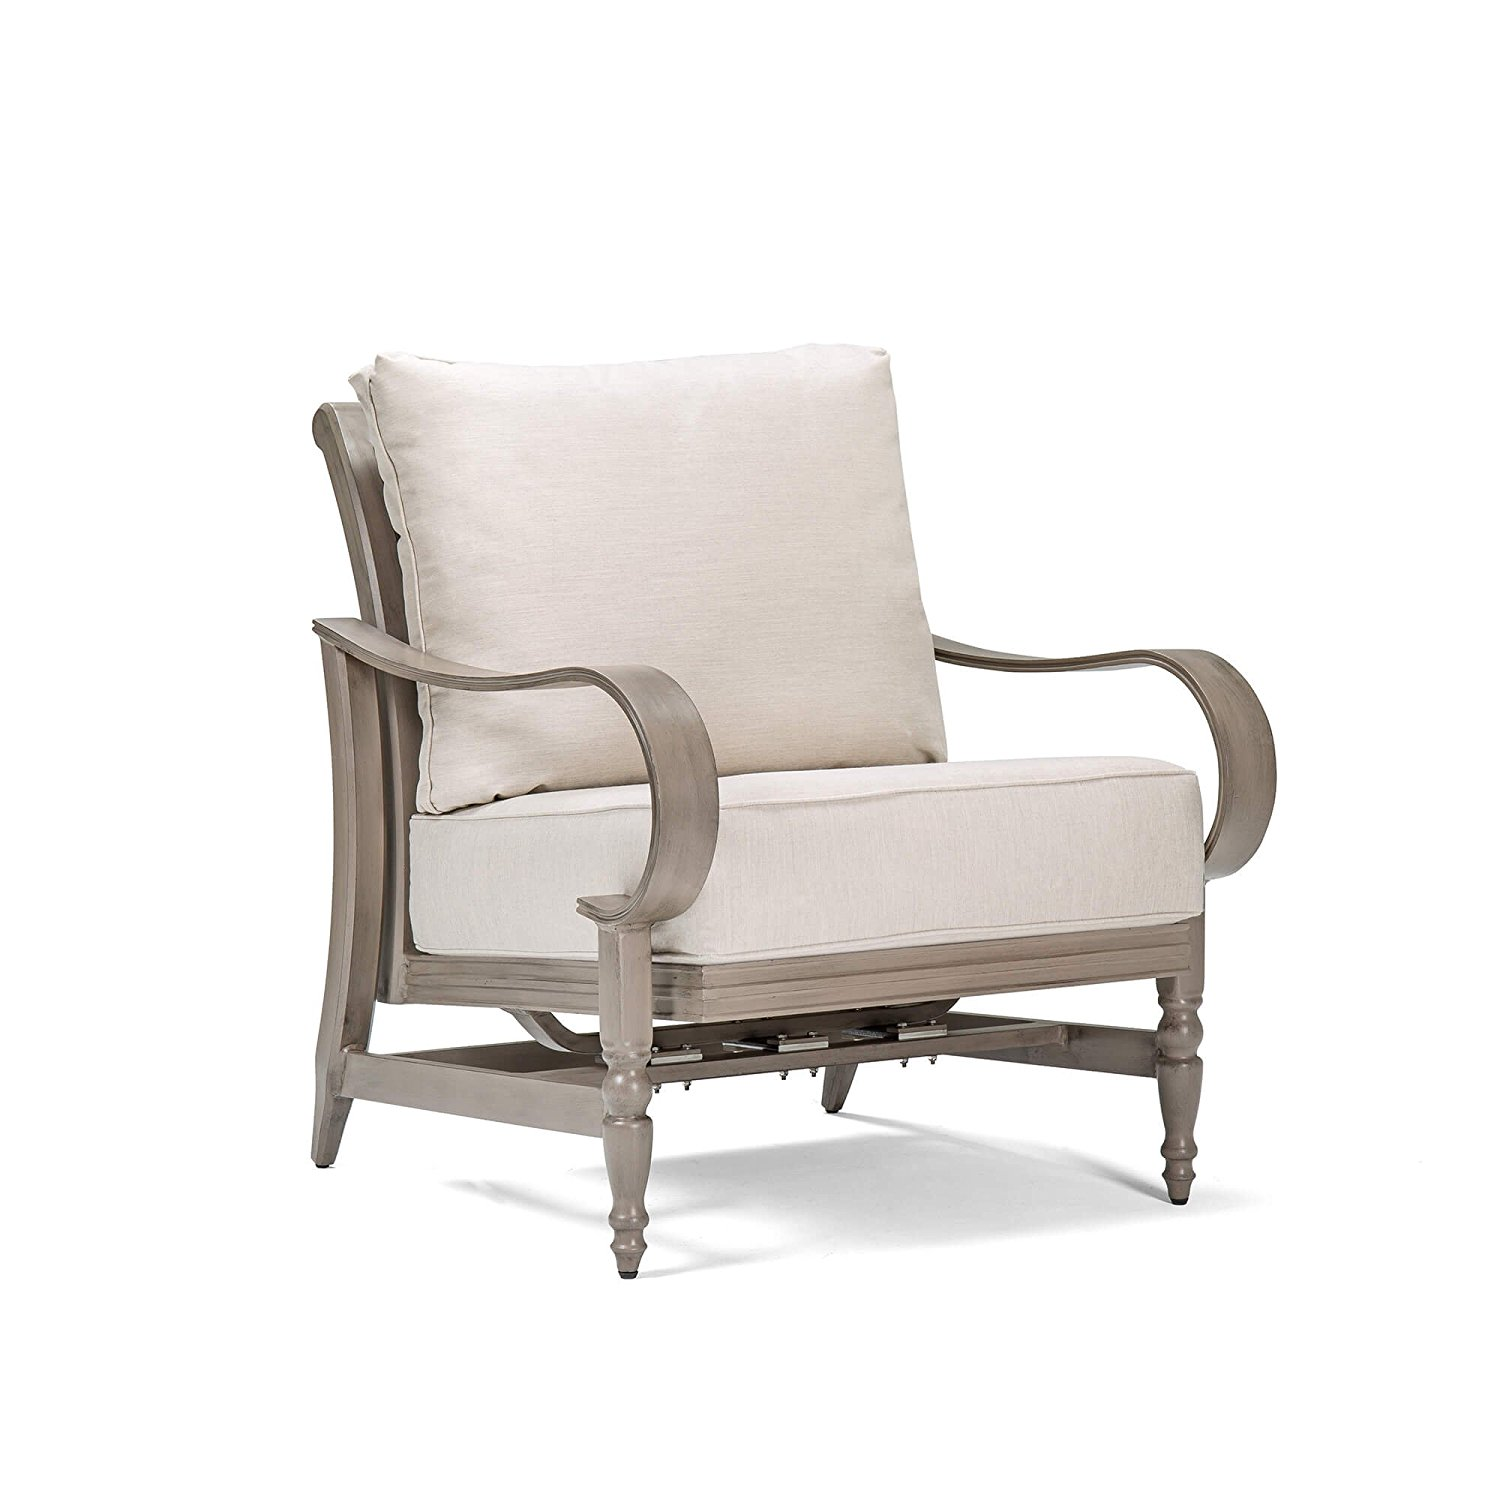 Blue Oak Outdoor Saylor Patio Furniture Hidden Motion Lounge Chair with Outdura Remy Sand Cushion